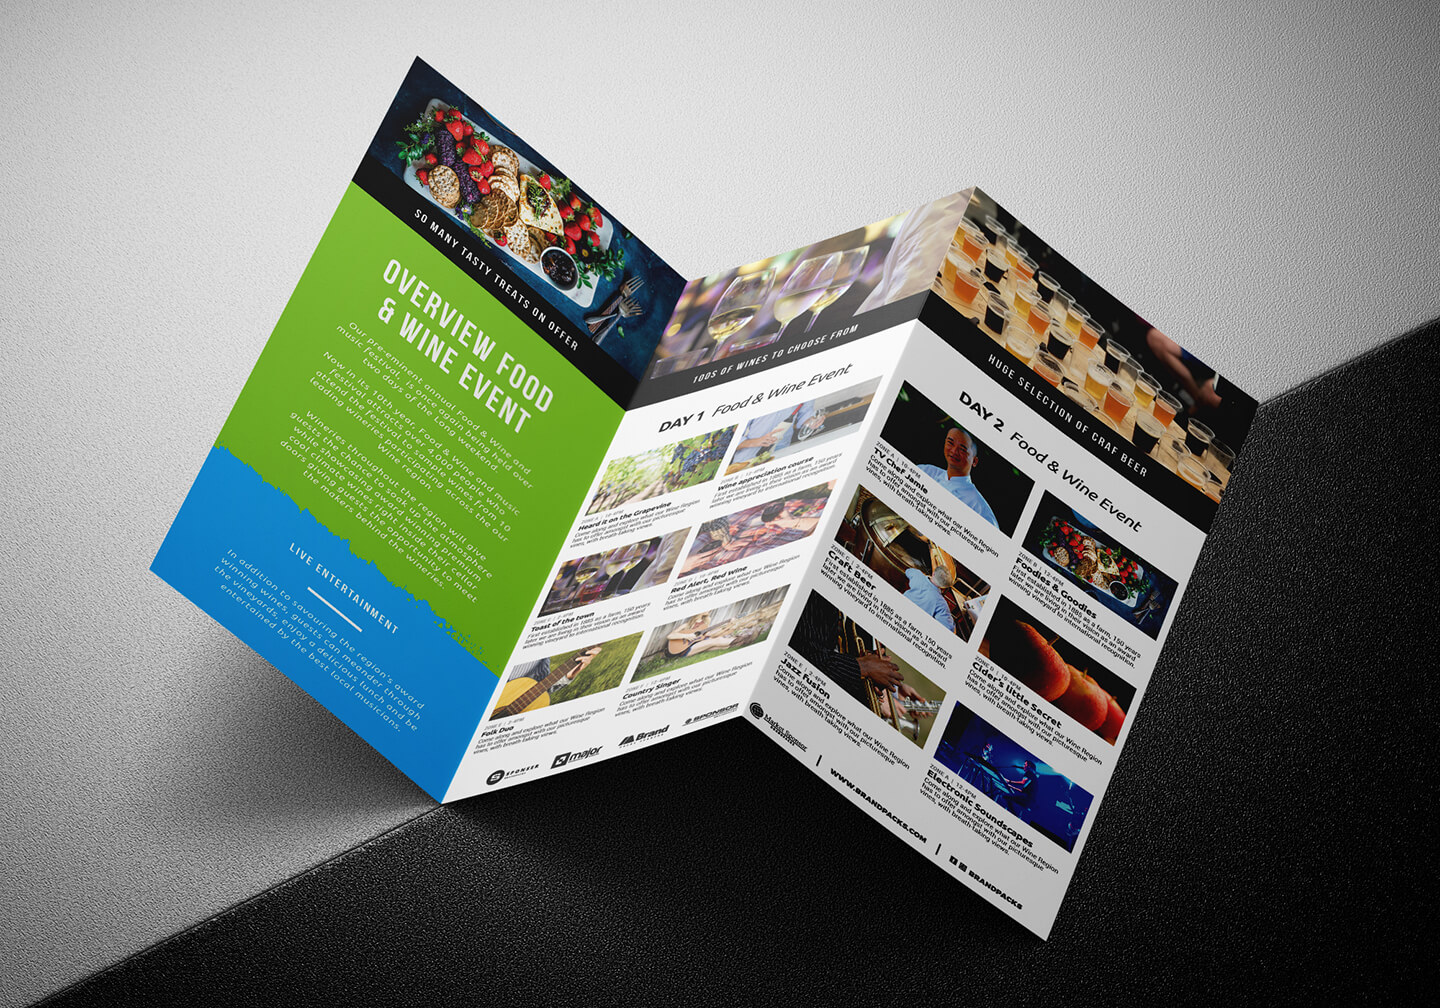 Free Tri Fold Brochure Template For Events & Festivals – Psd Inside Tri Fold Brochure Template Illustrator